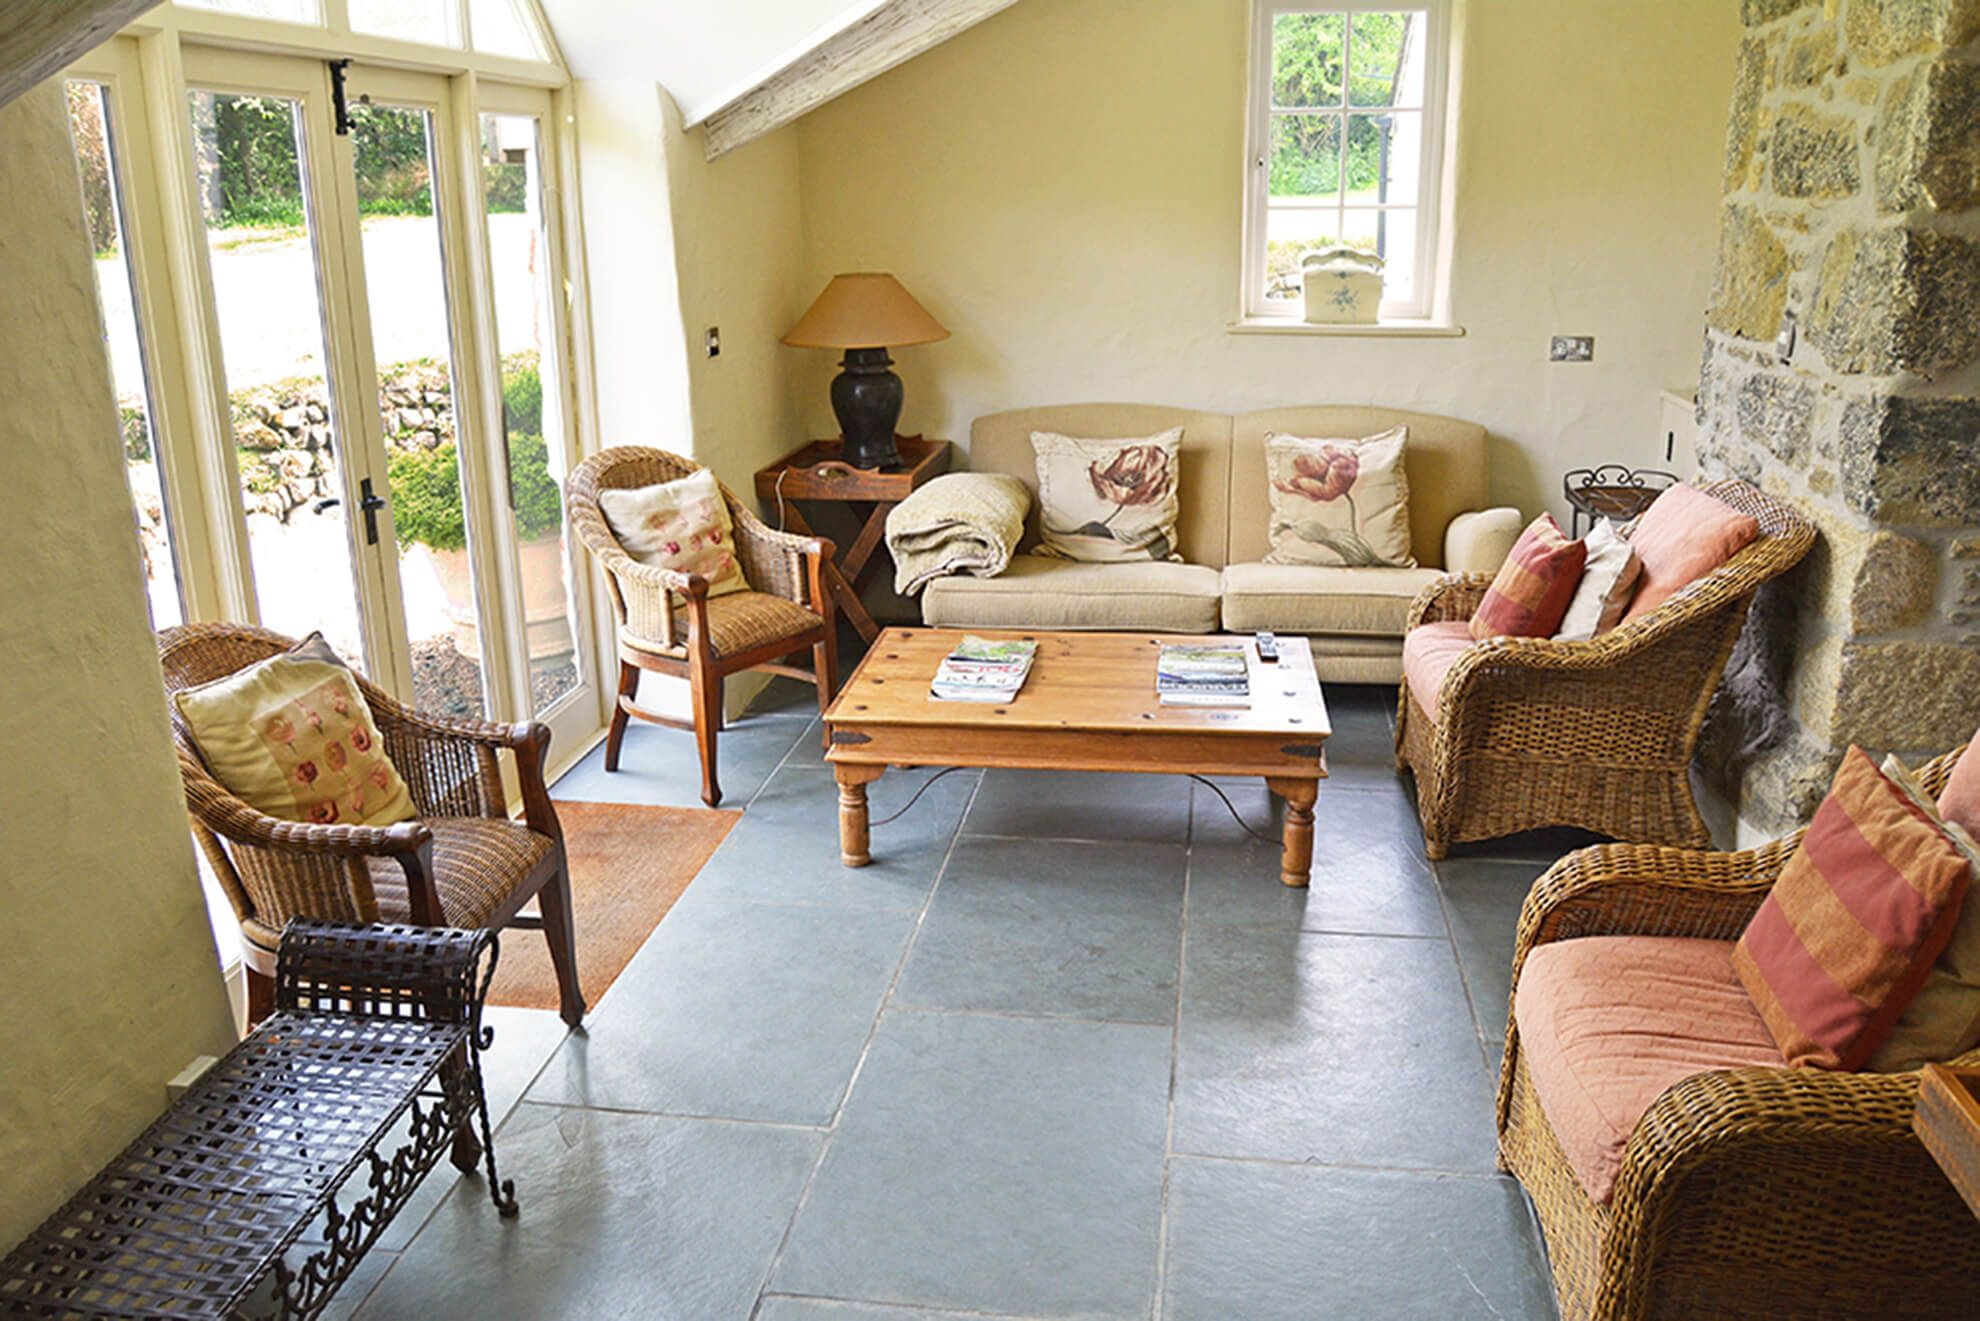 Ground floor: Sunny garden room with comfortable seating